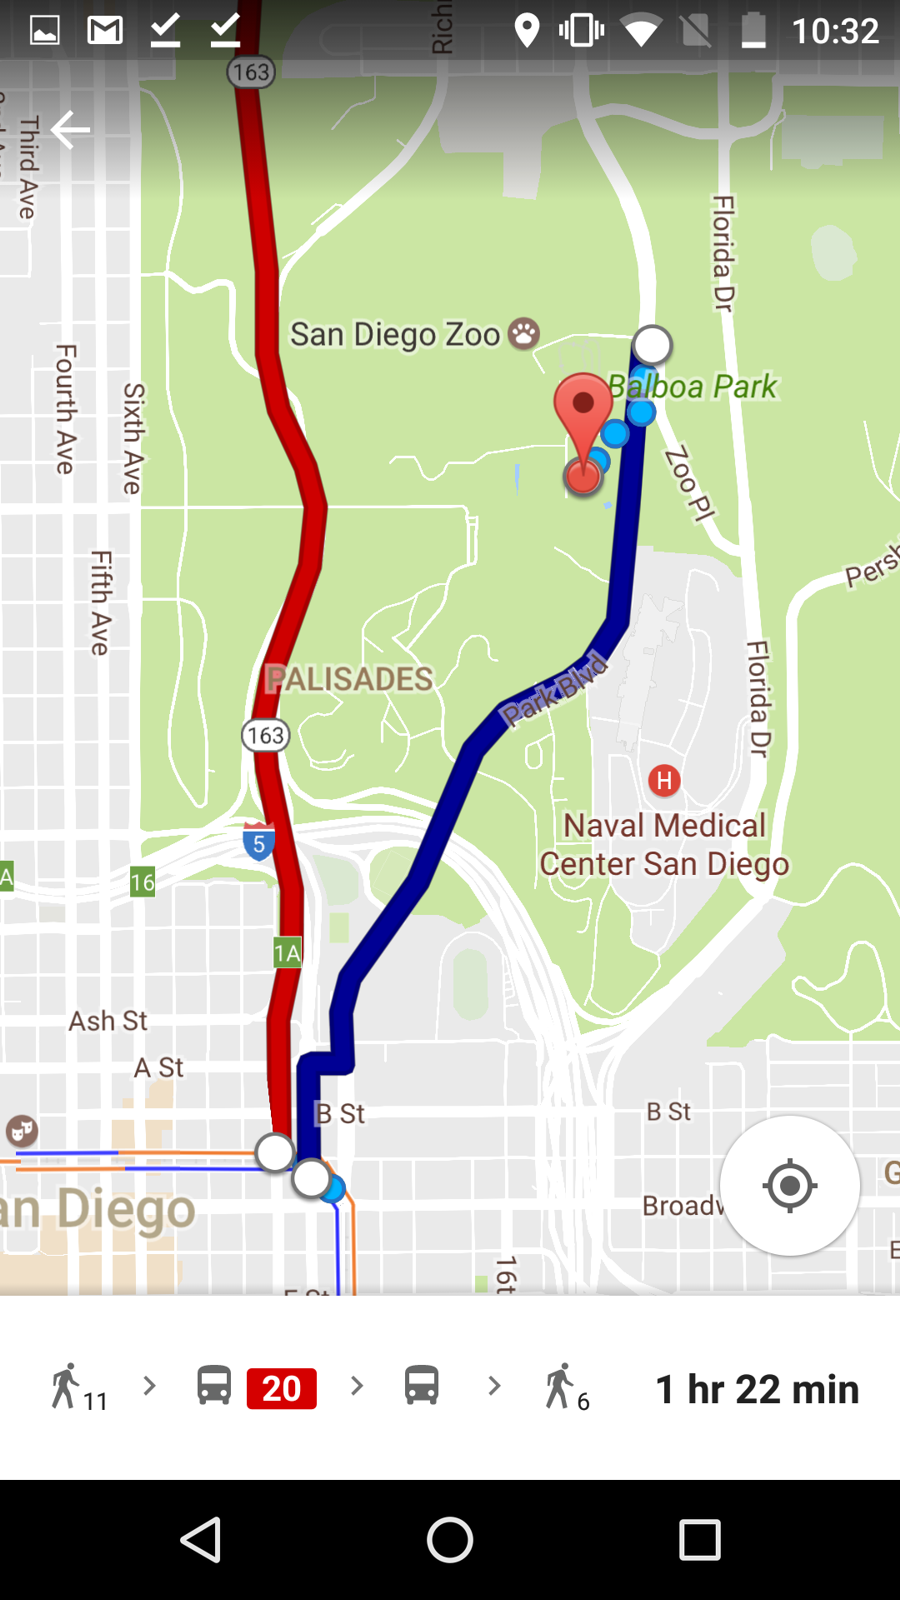 san diego, google maps, and the mts bus system part 2